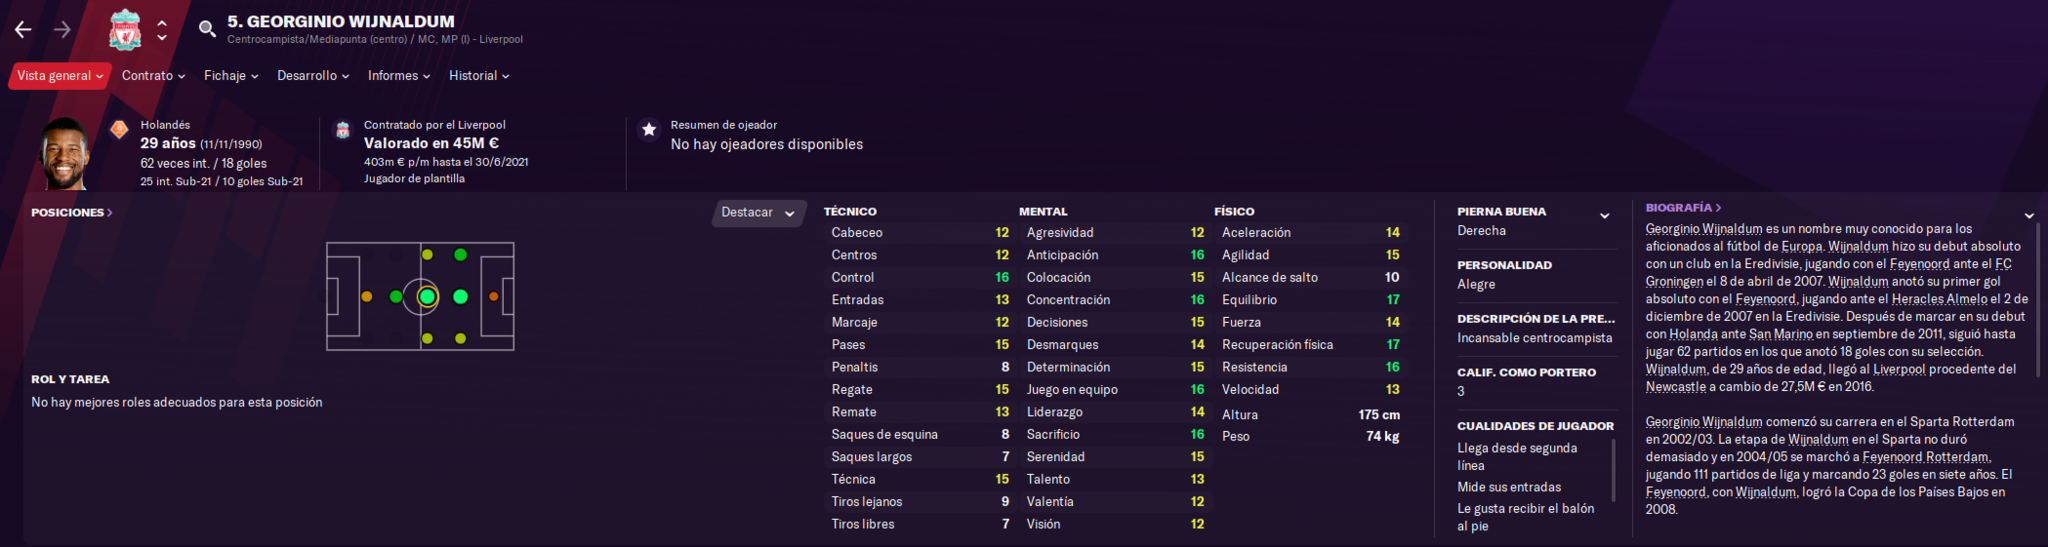 Estadísticas de Wijnaldum en Football Manager 2021